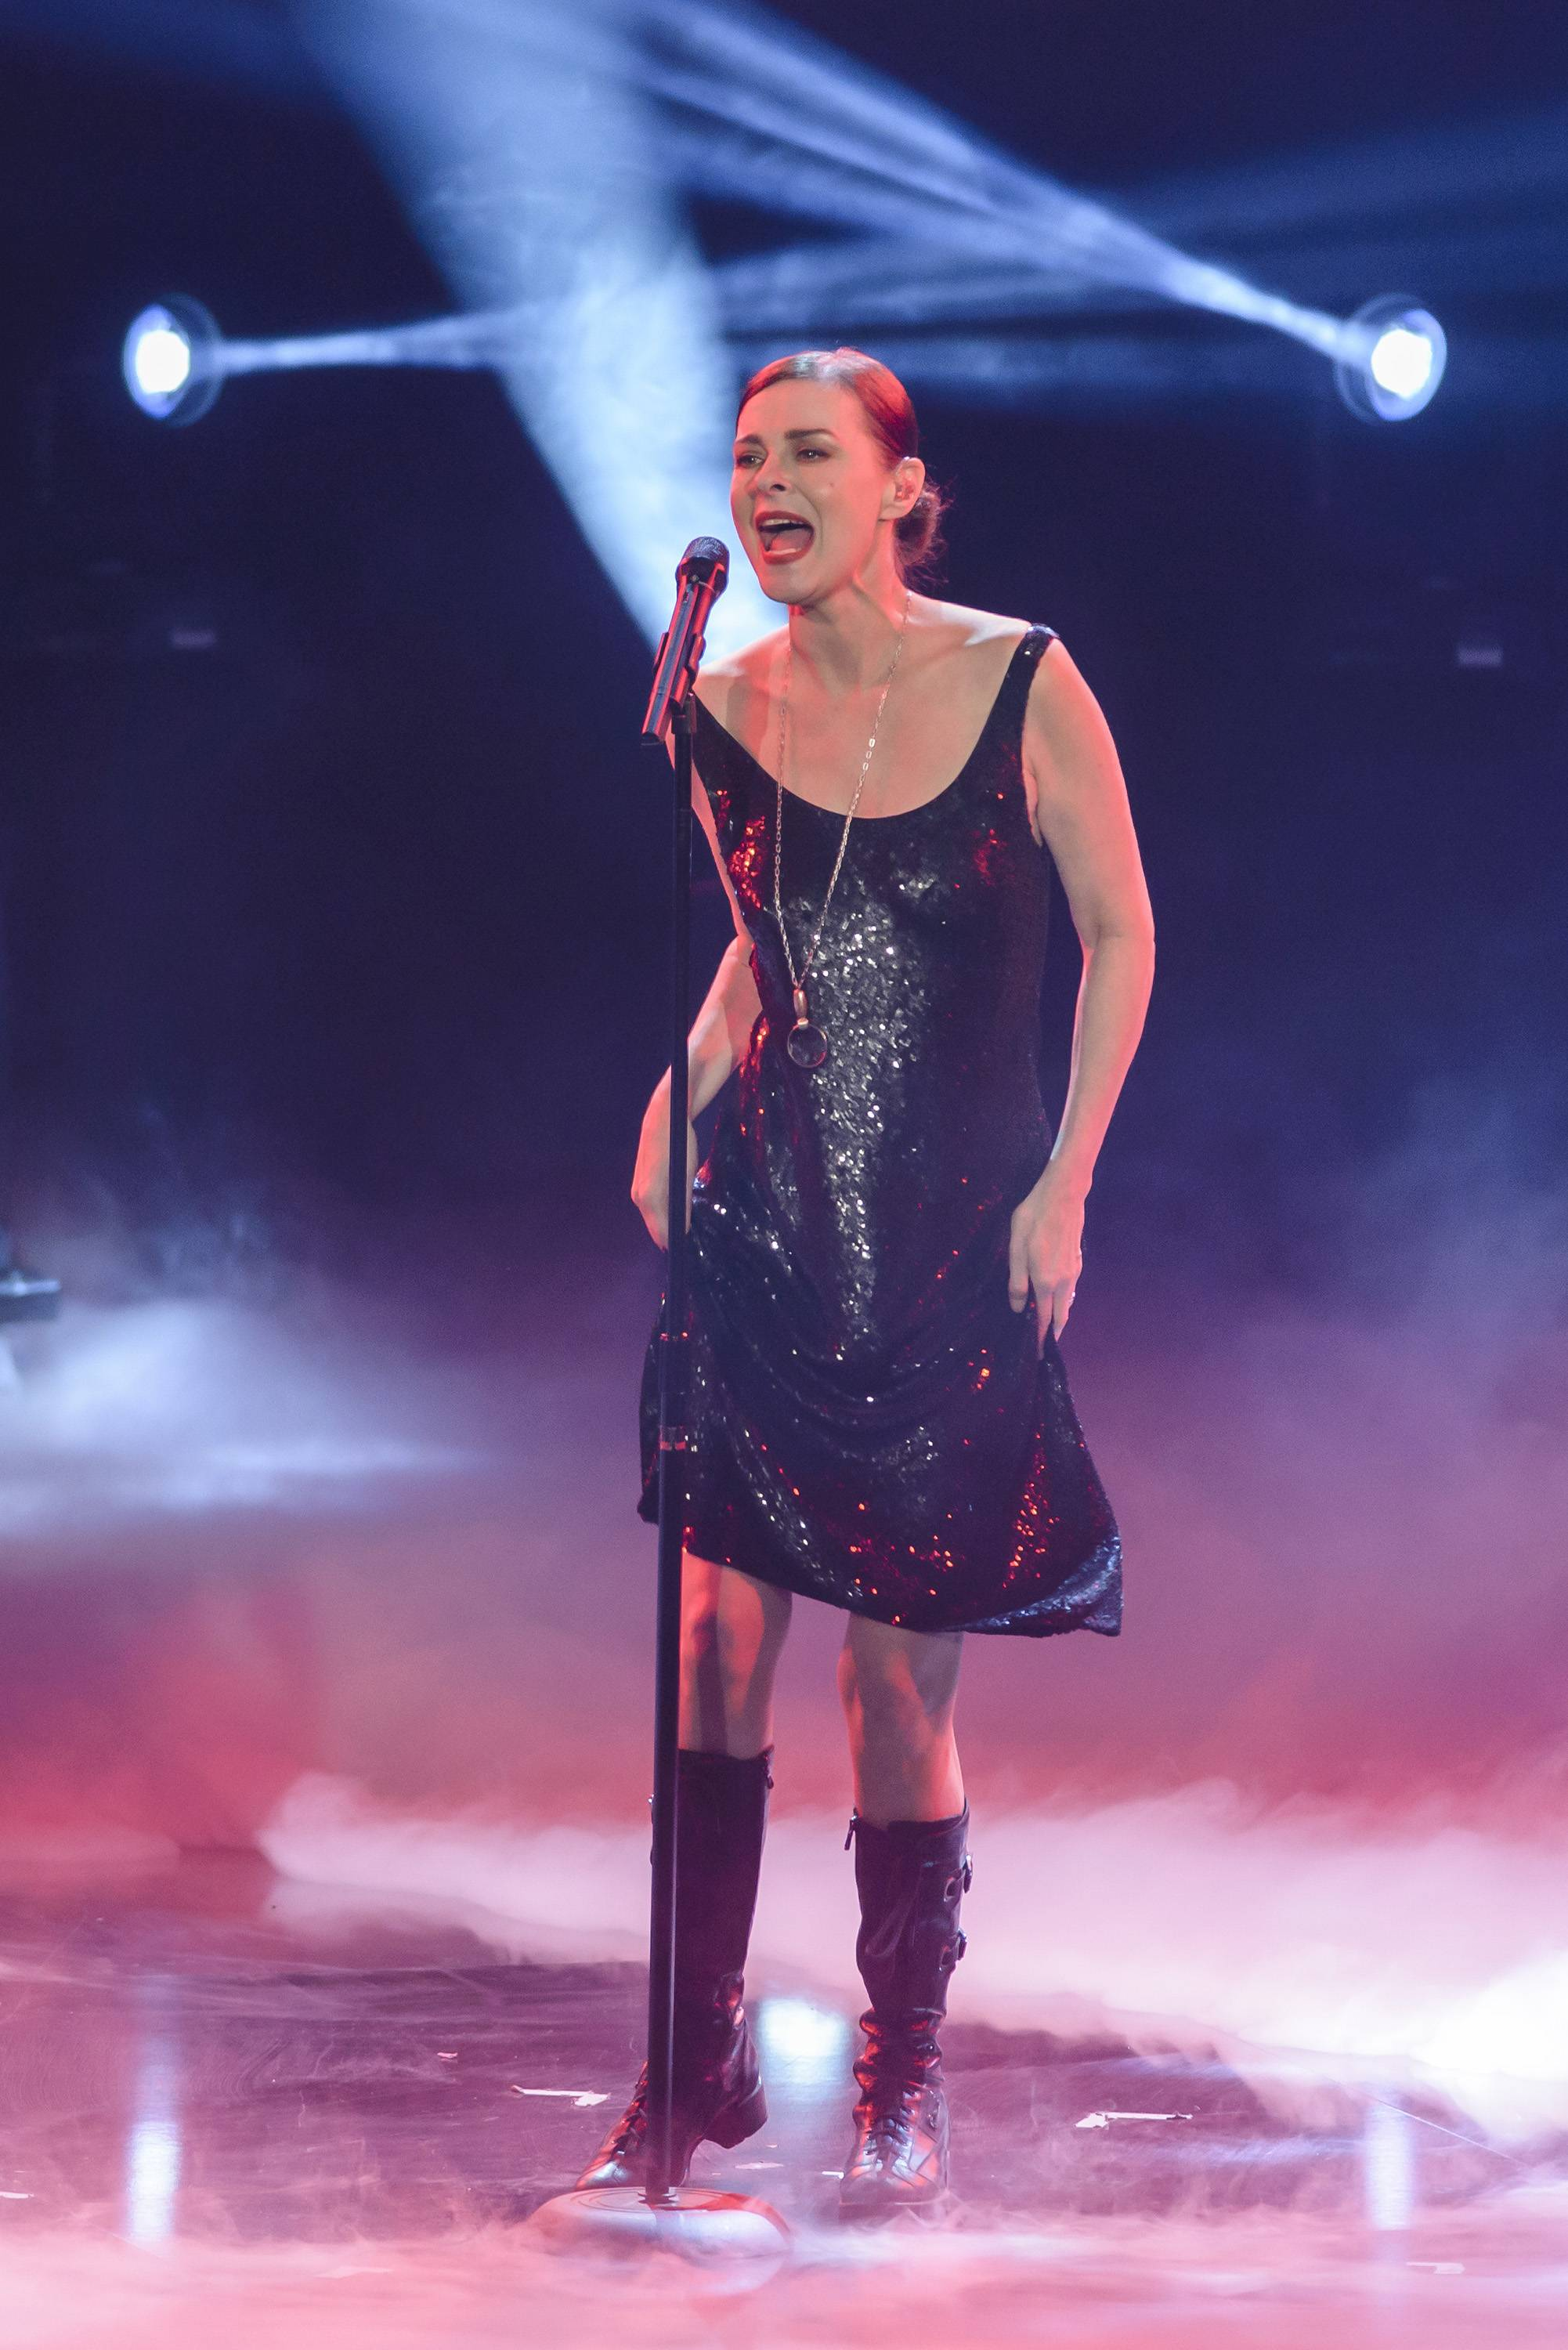 Lisa Stansfield - (Photo: Clemens Bilan/Getty Images)